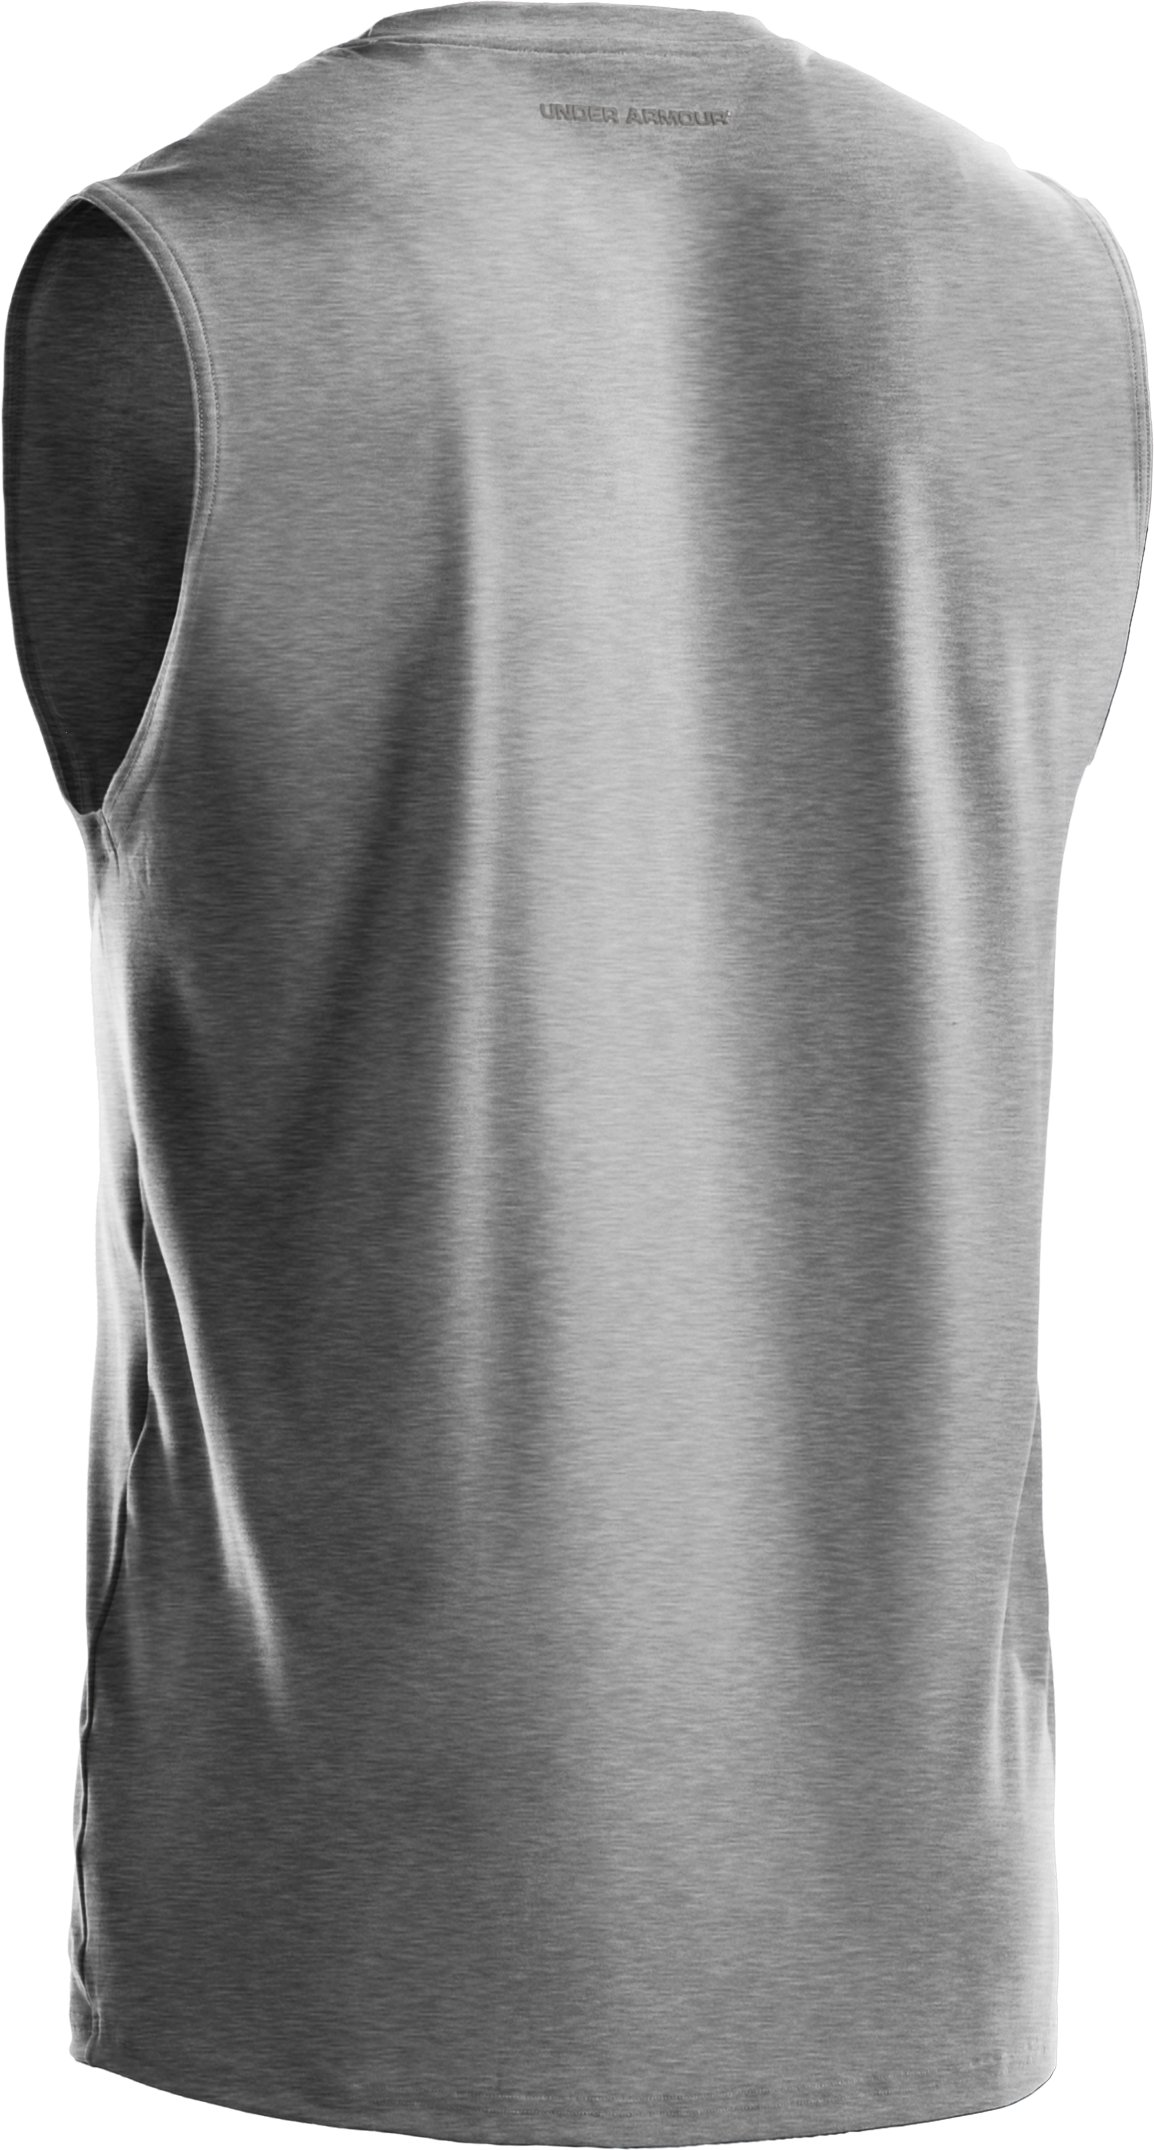 Men's TNP Sleeveless T-Shirt, True Gray Heather